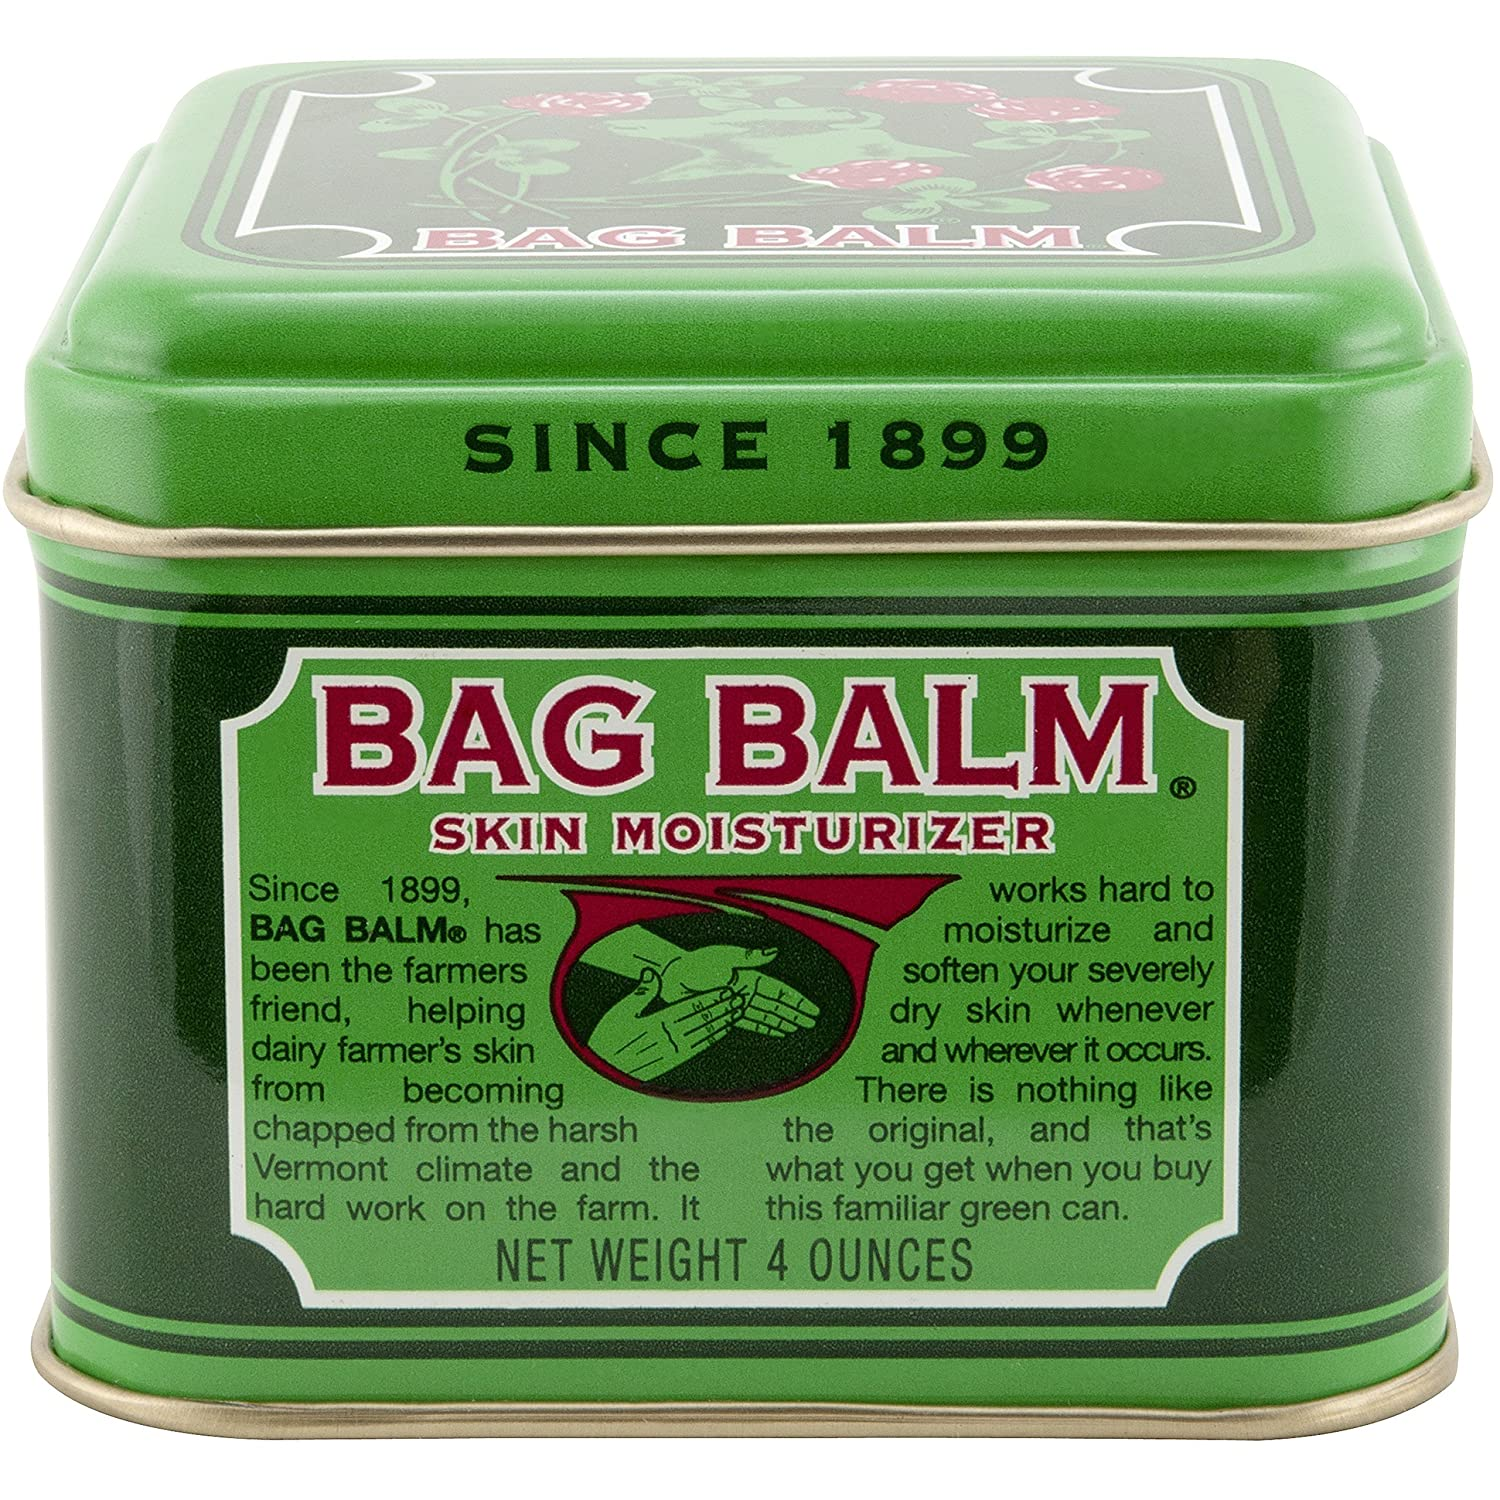 Vermont's Original Bag Balm Skin Moisturizer, 4 Ounce Tin, Moisturizing Ointment for Dry Skin that can Crack Split or Chafe on Hands Feet Elbows Knees Shoulders and More Everready First Aid